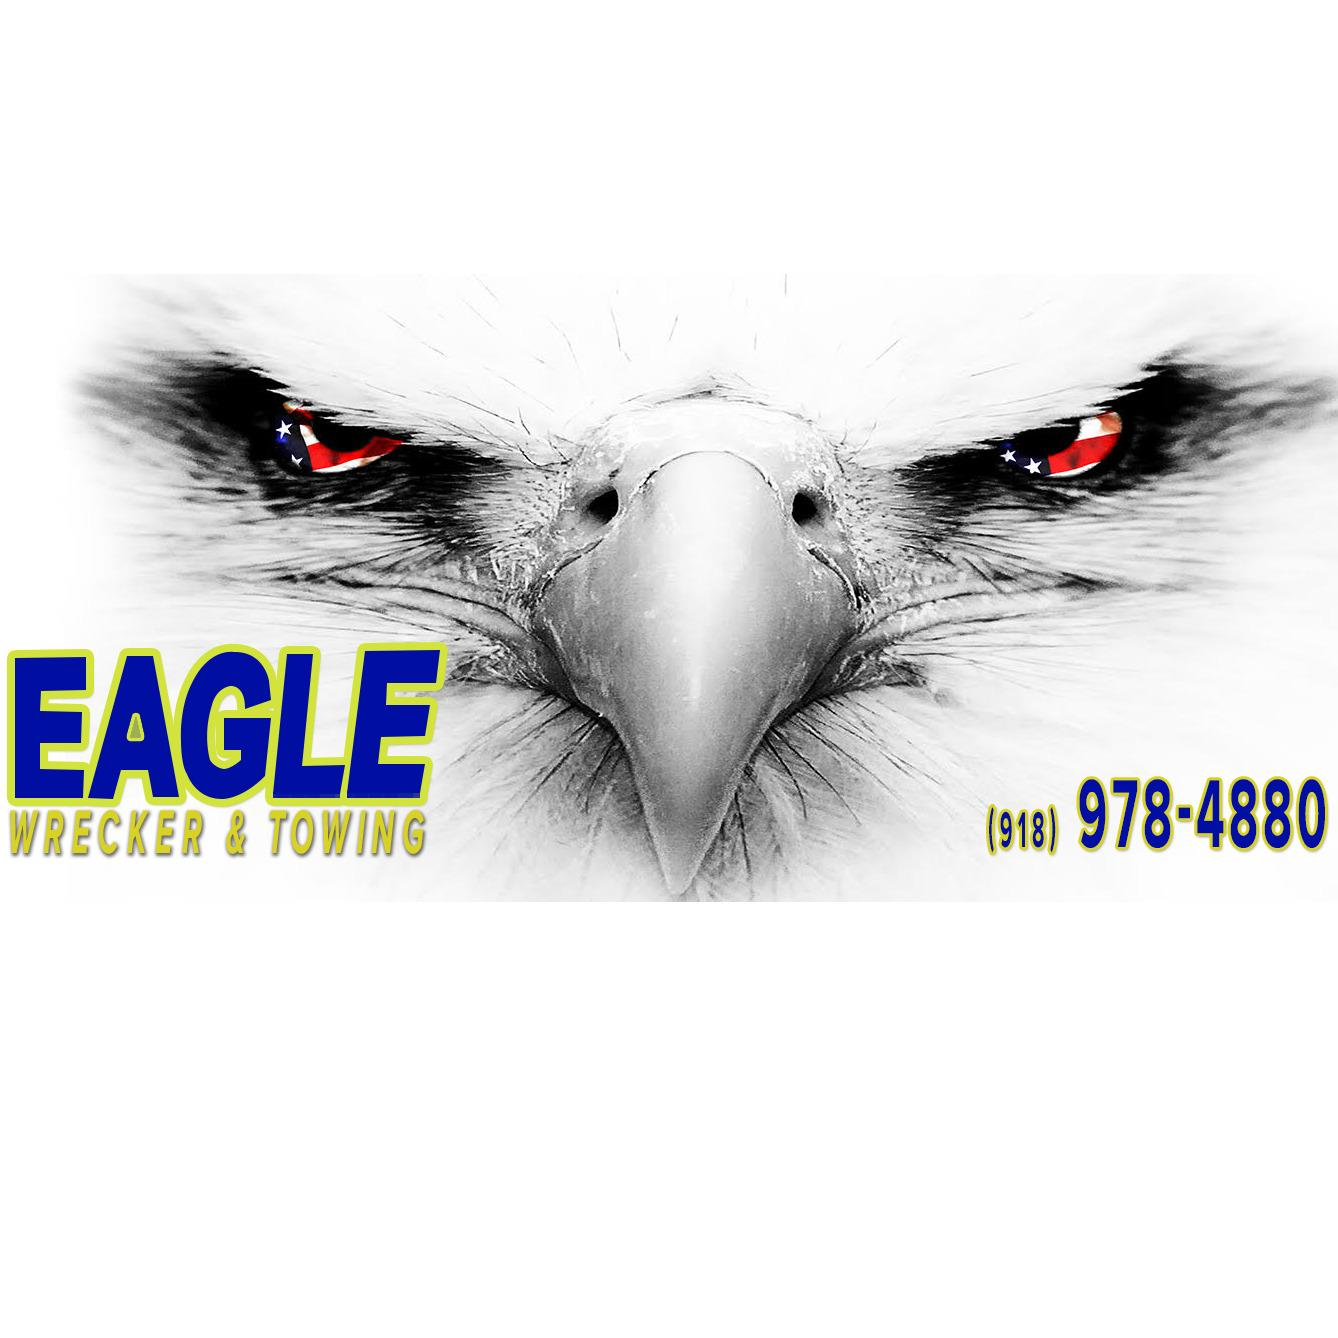 Eagle Wrecker and Towing image 6